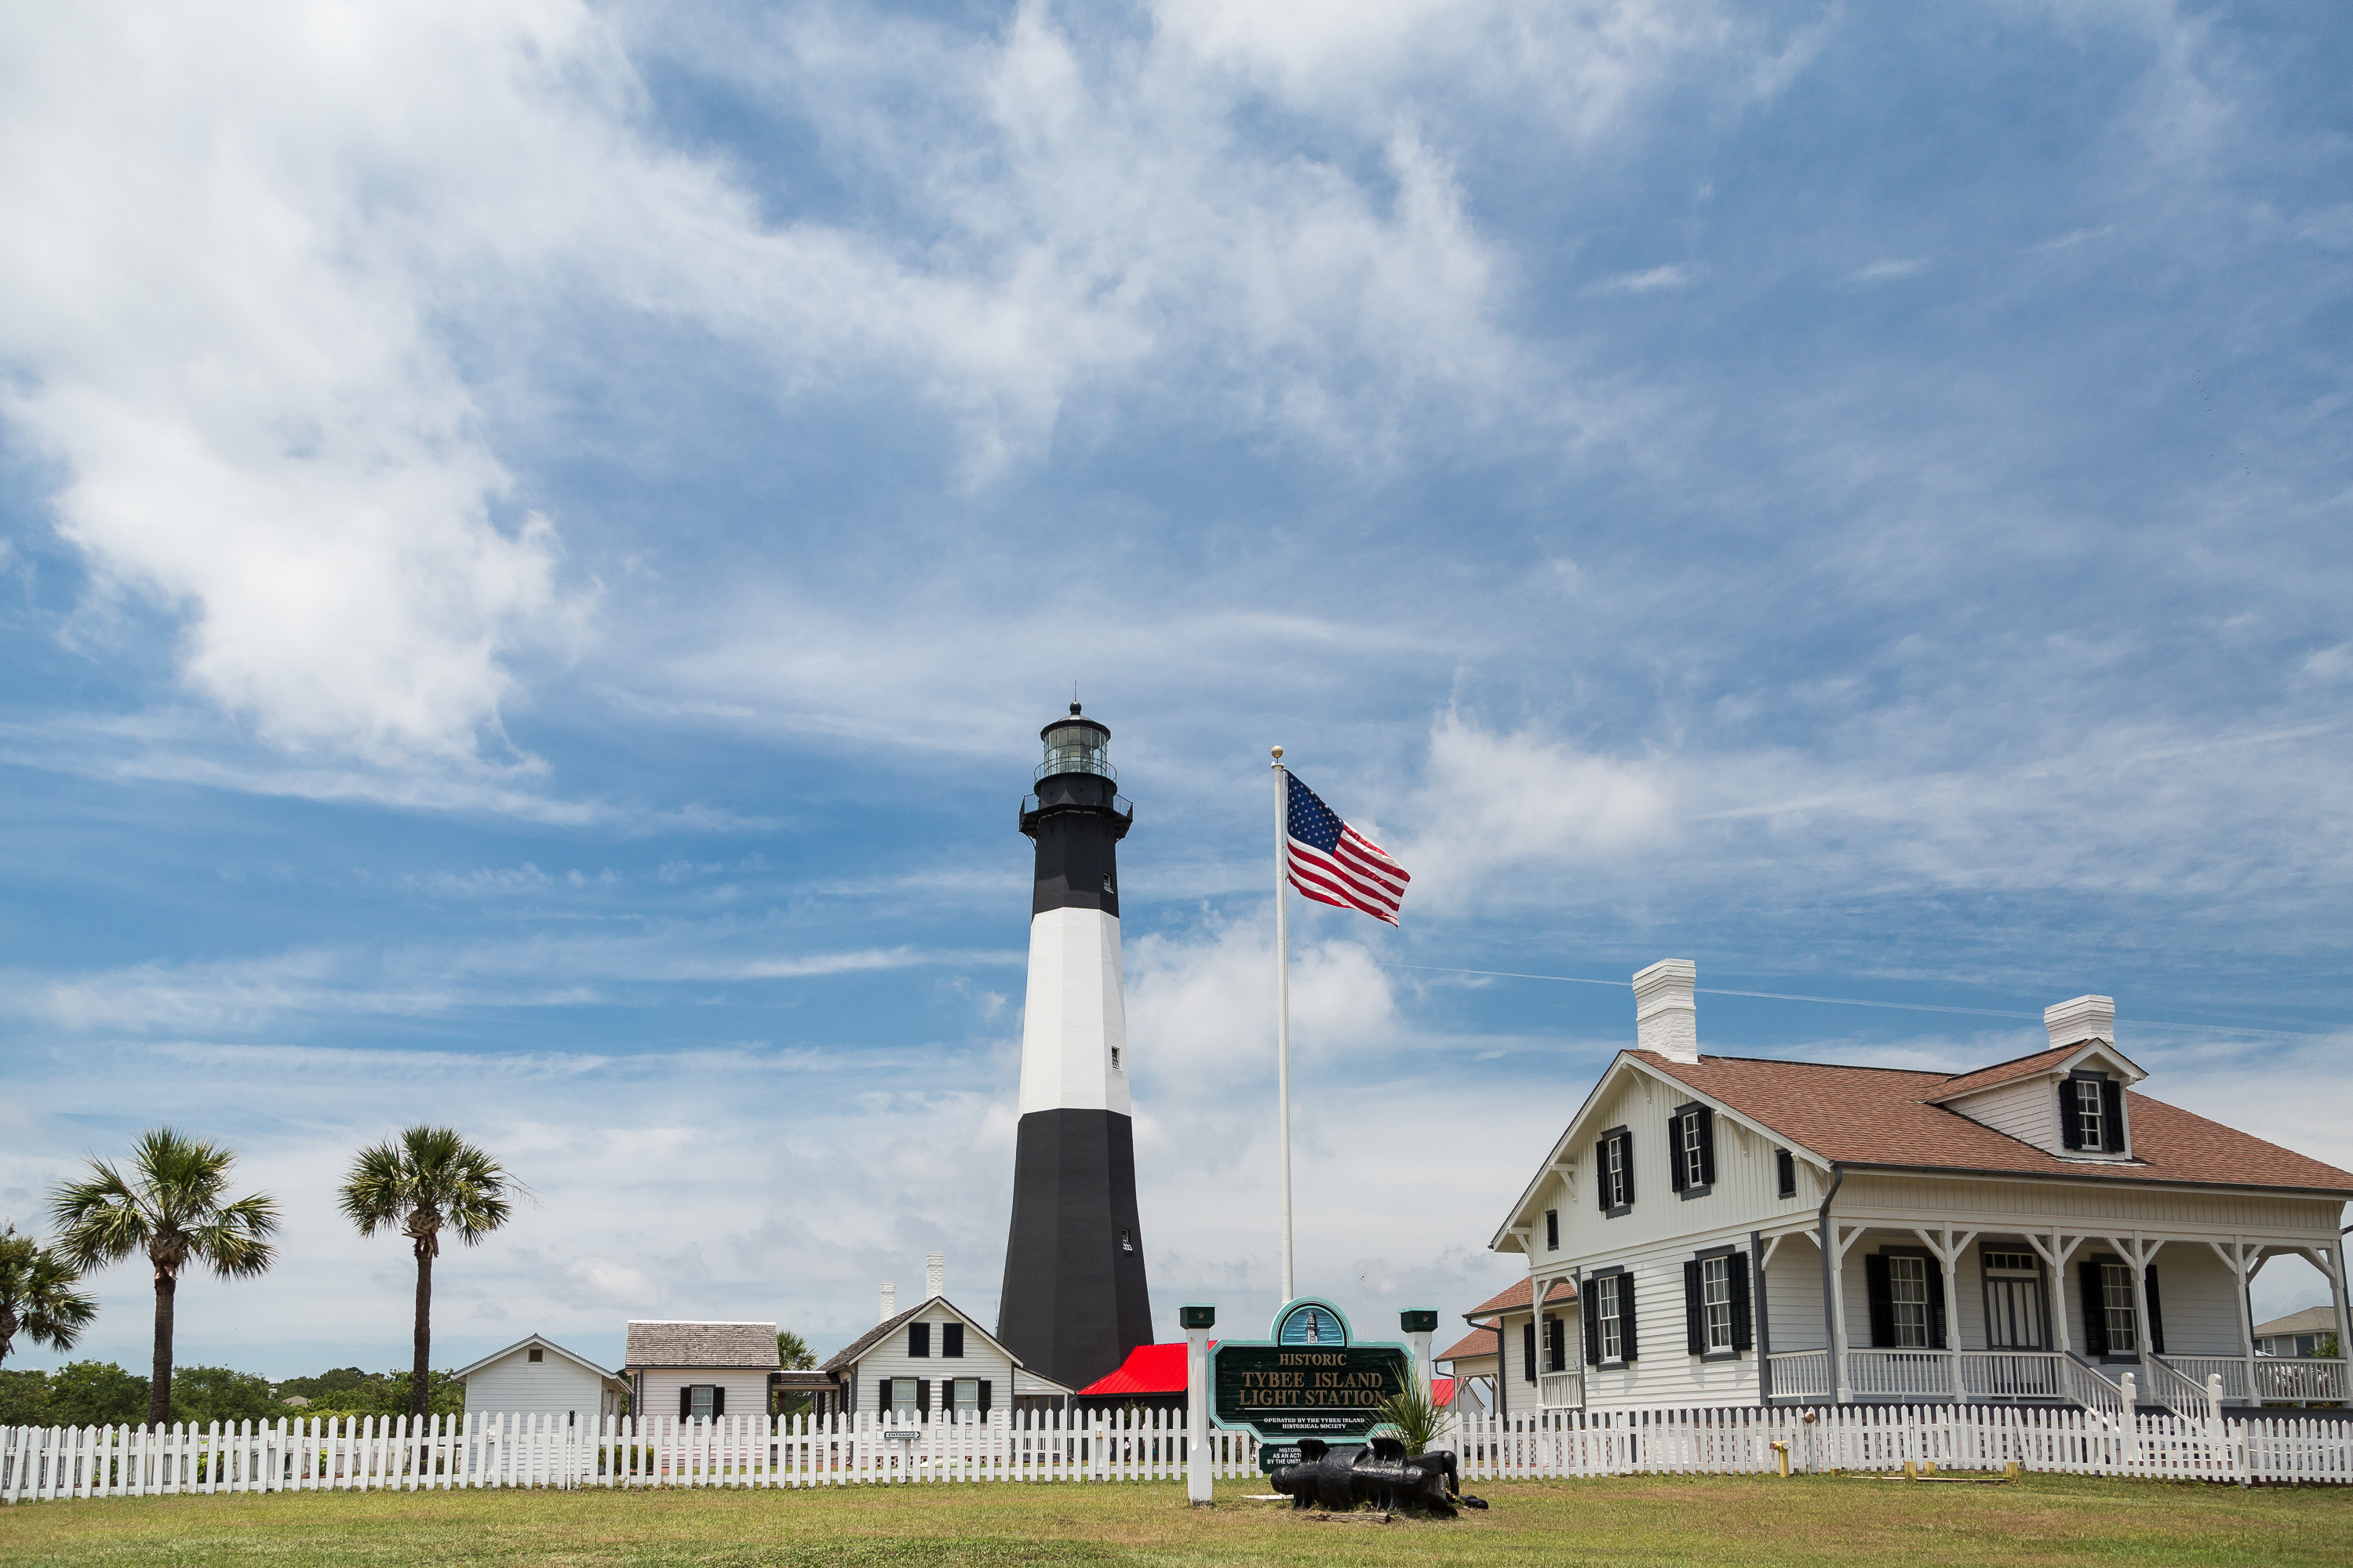 A black and white lighthouse on Tybee Island